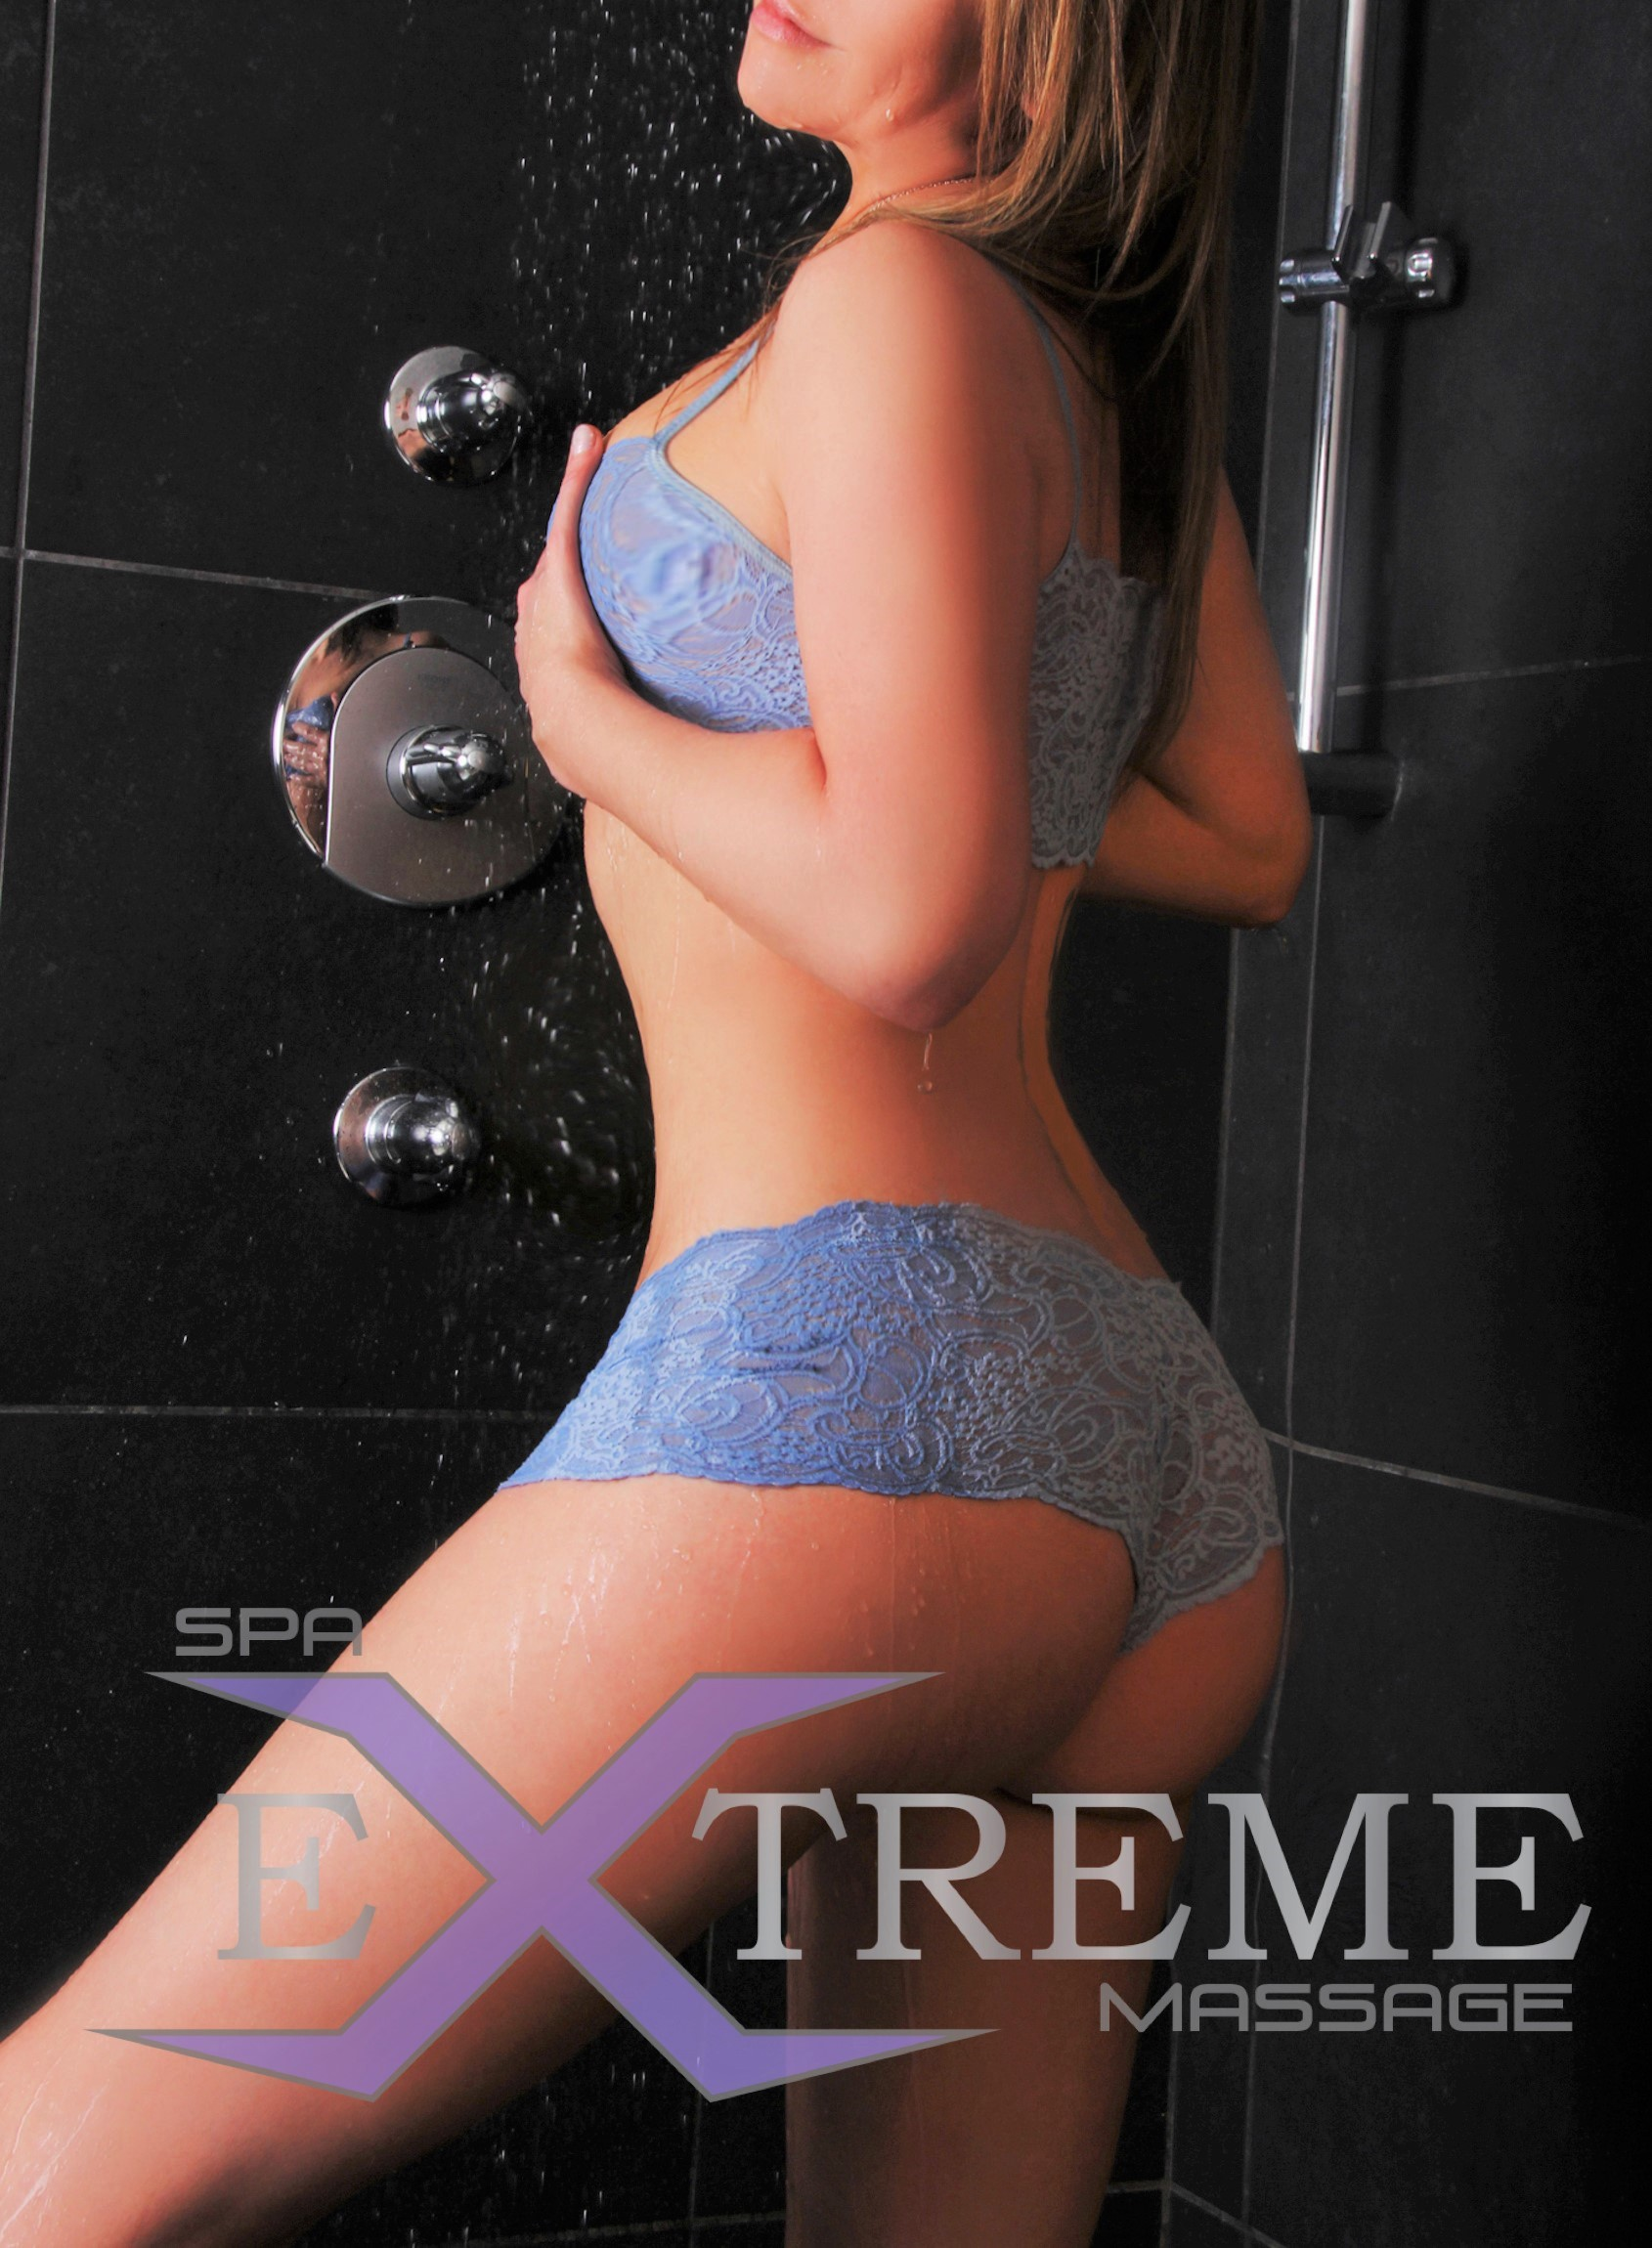 Extreme-069CCrop